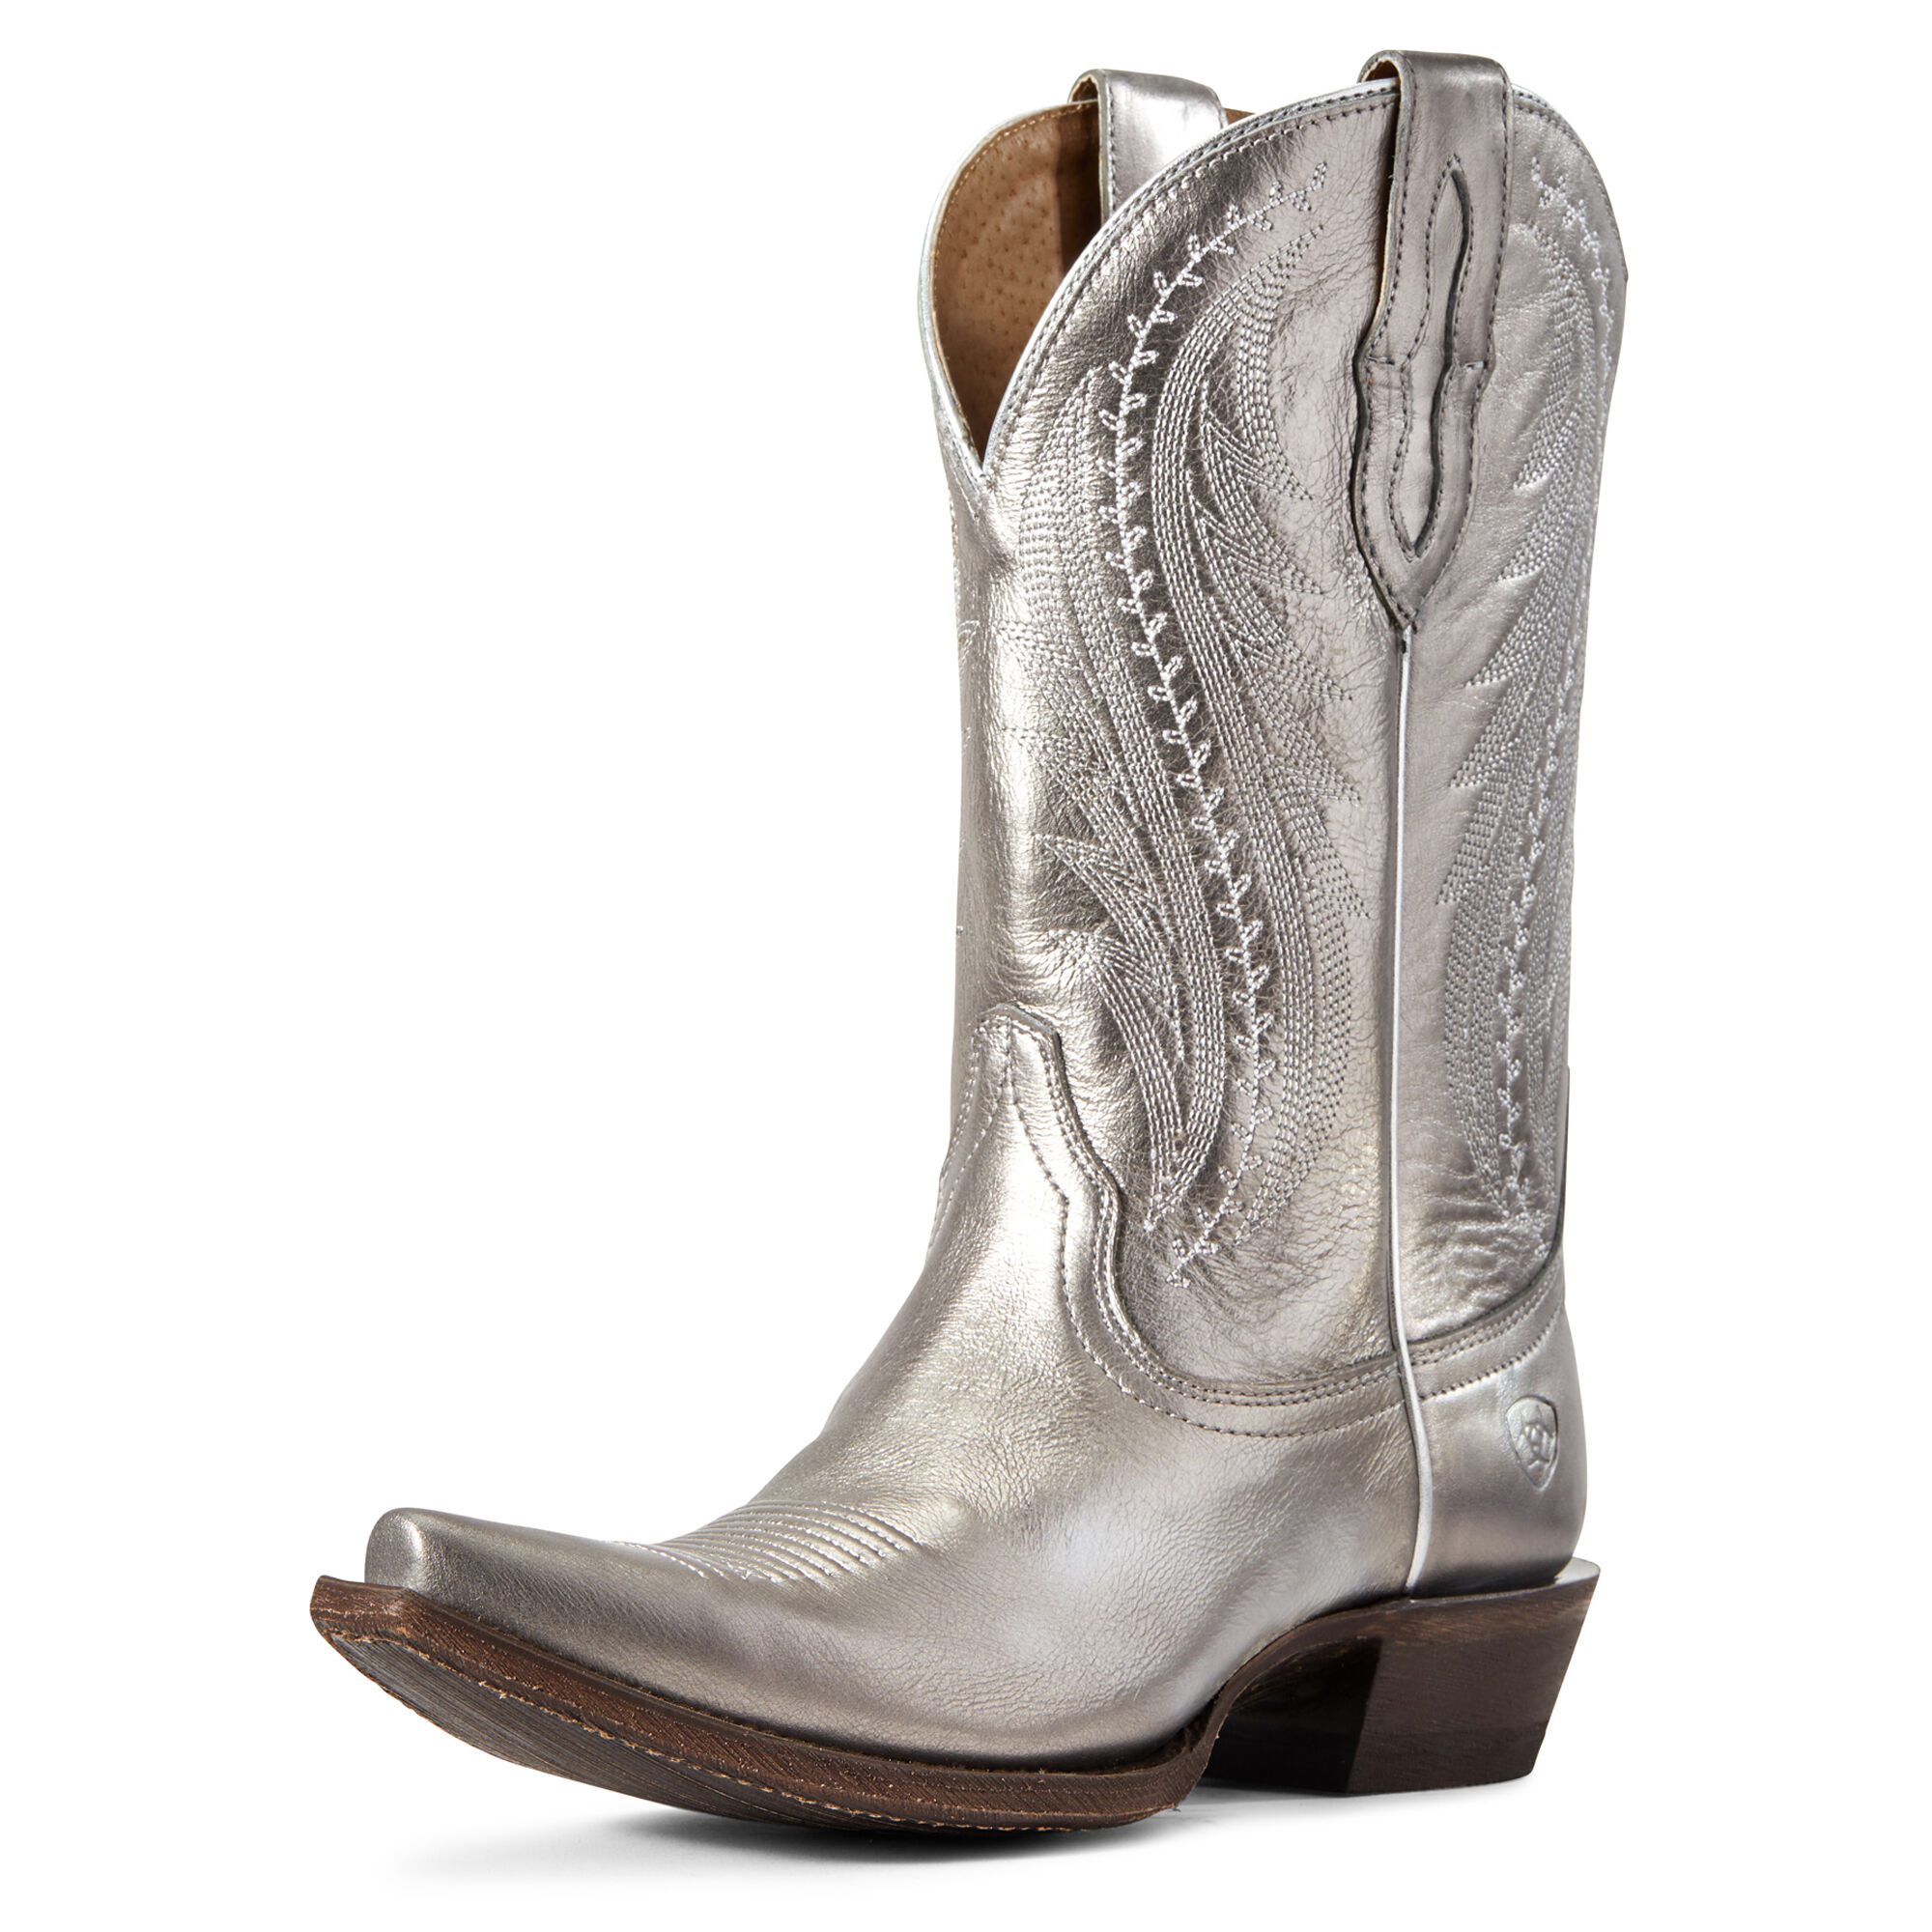 Ariat Boots Sale Clearance